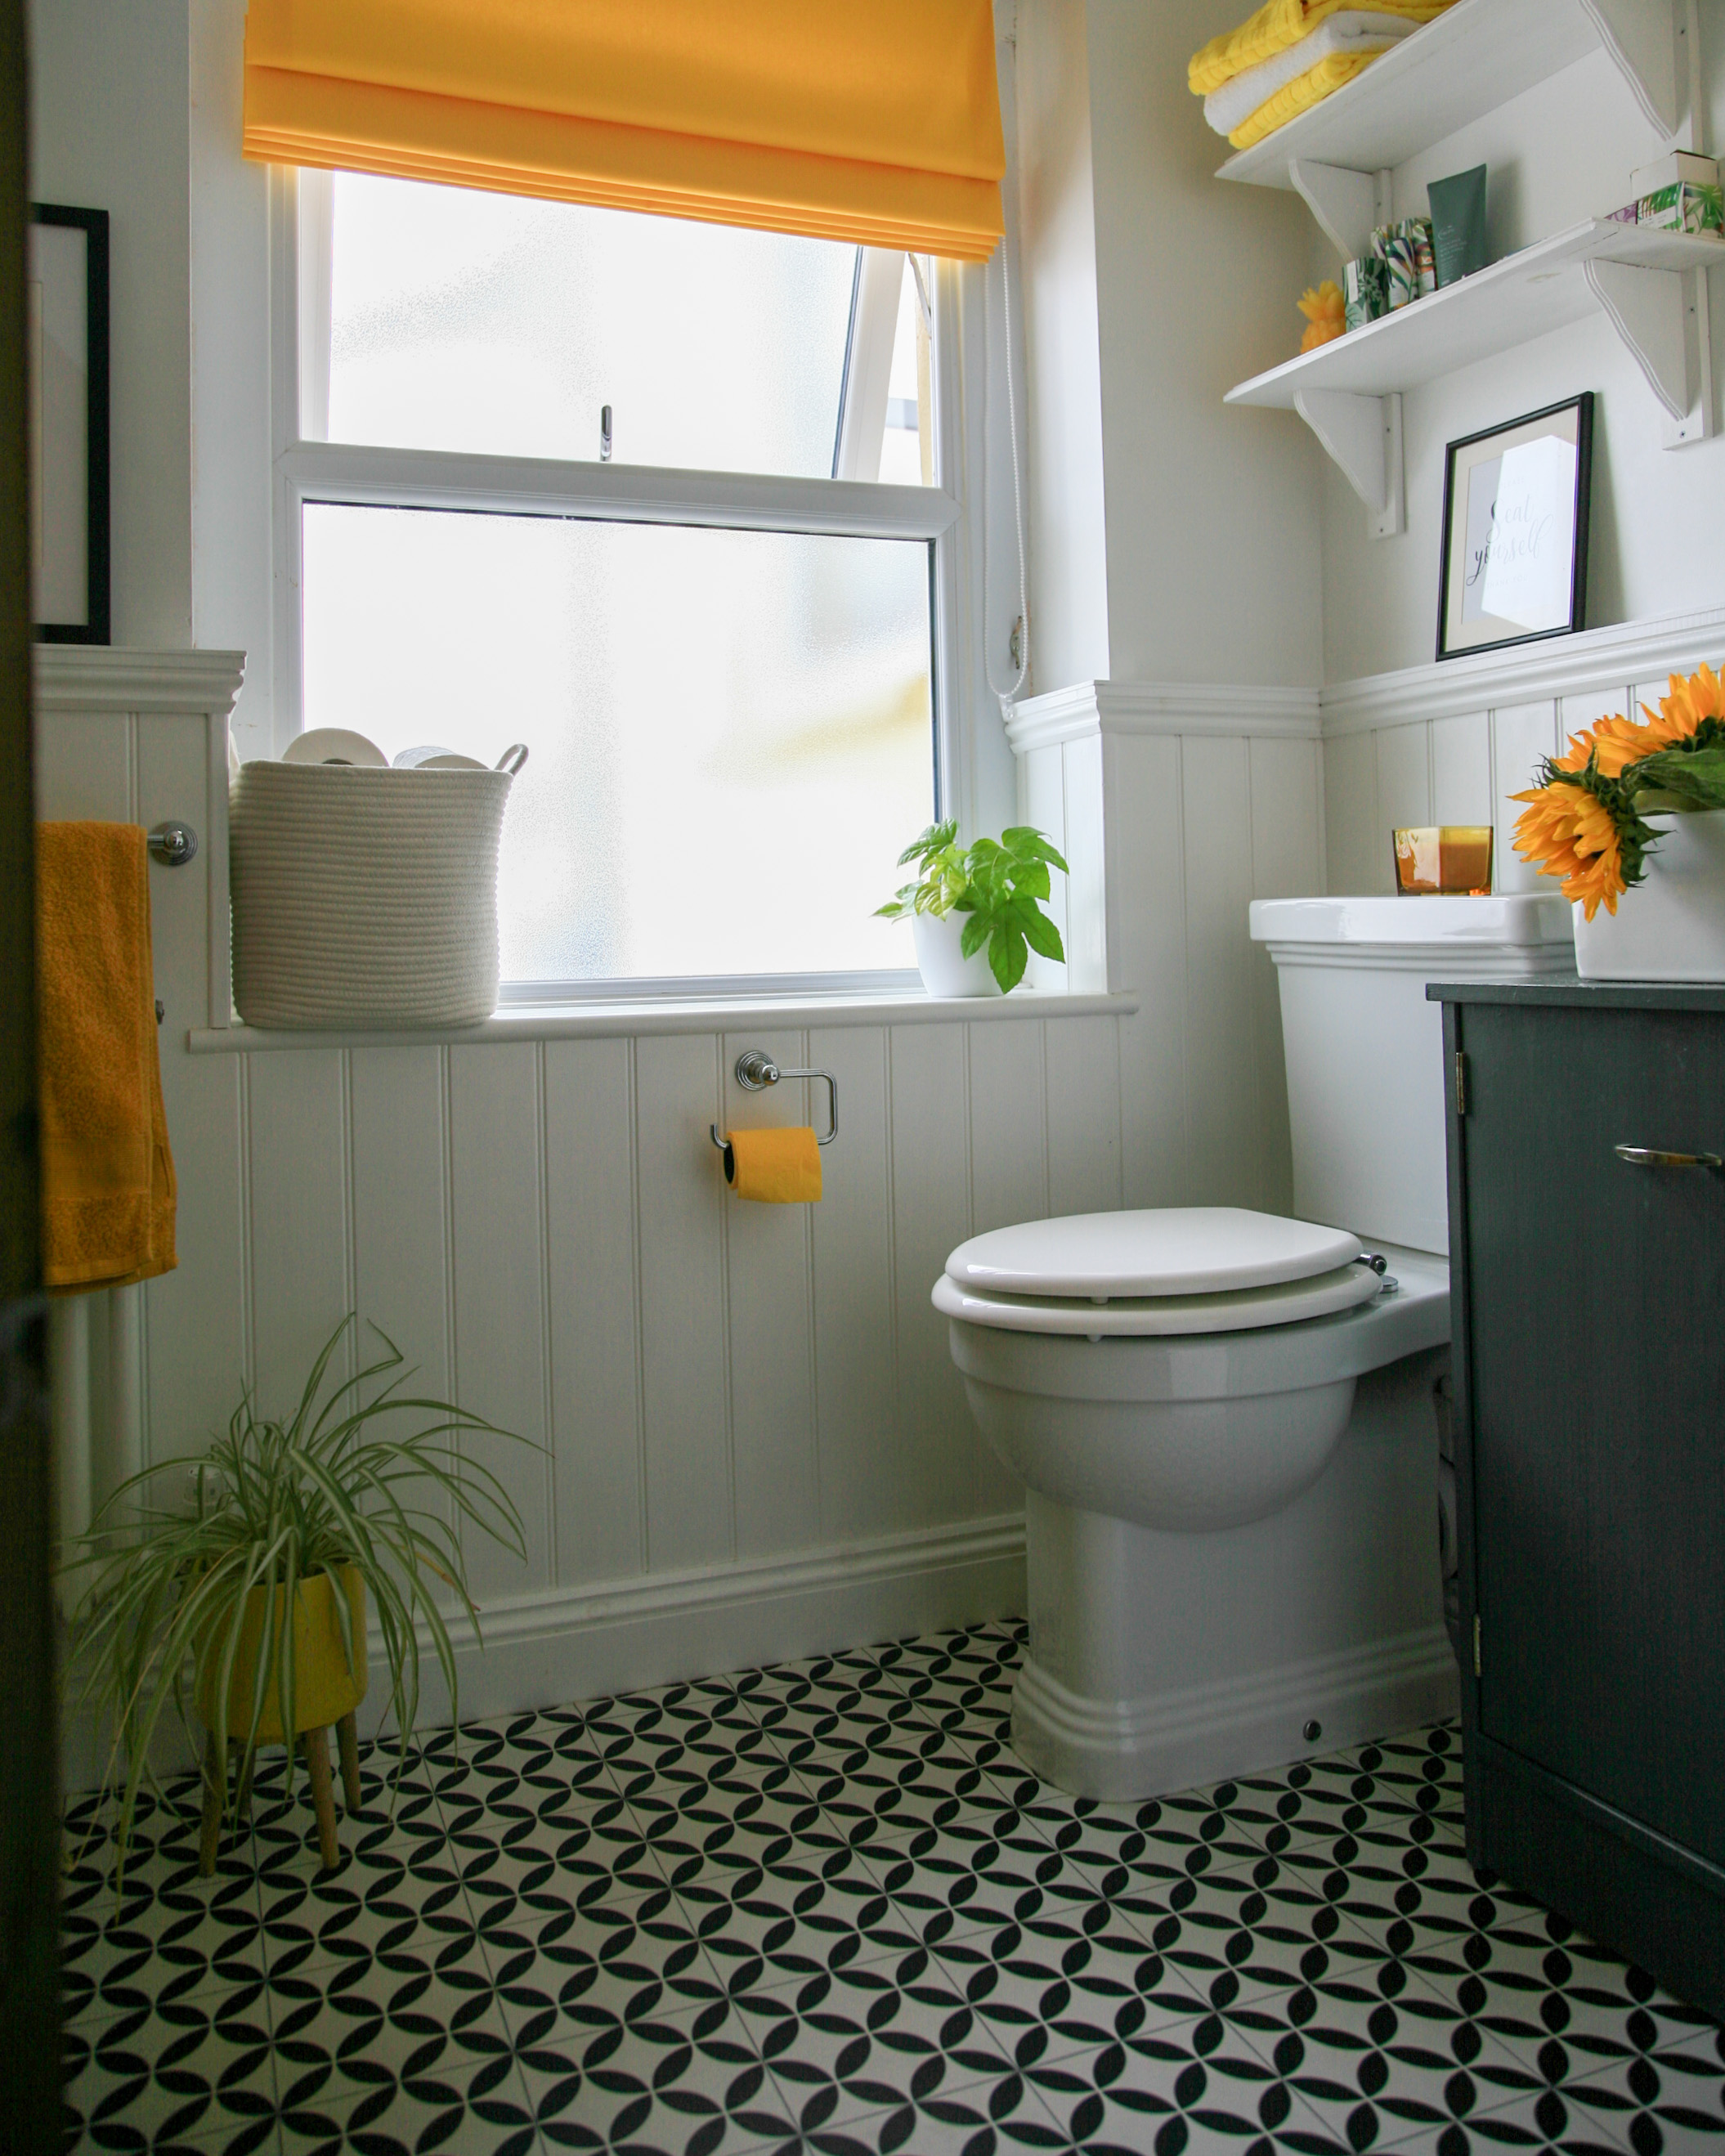 How to renovate a small bathroom